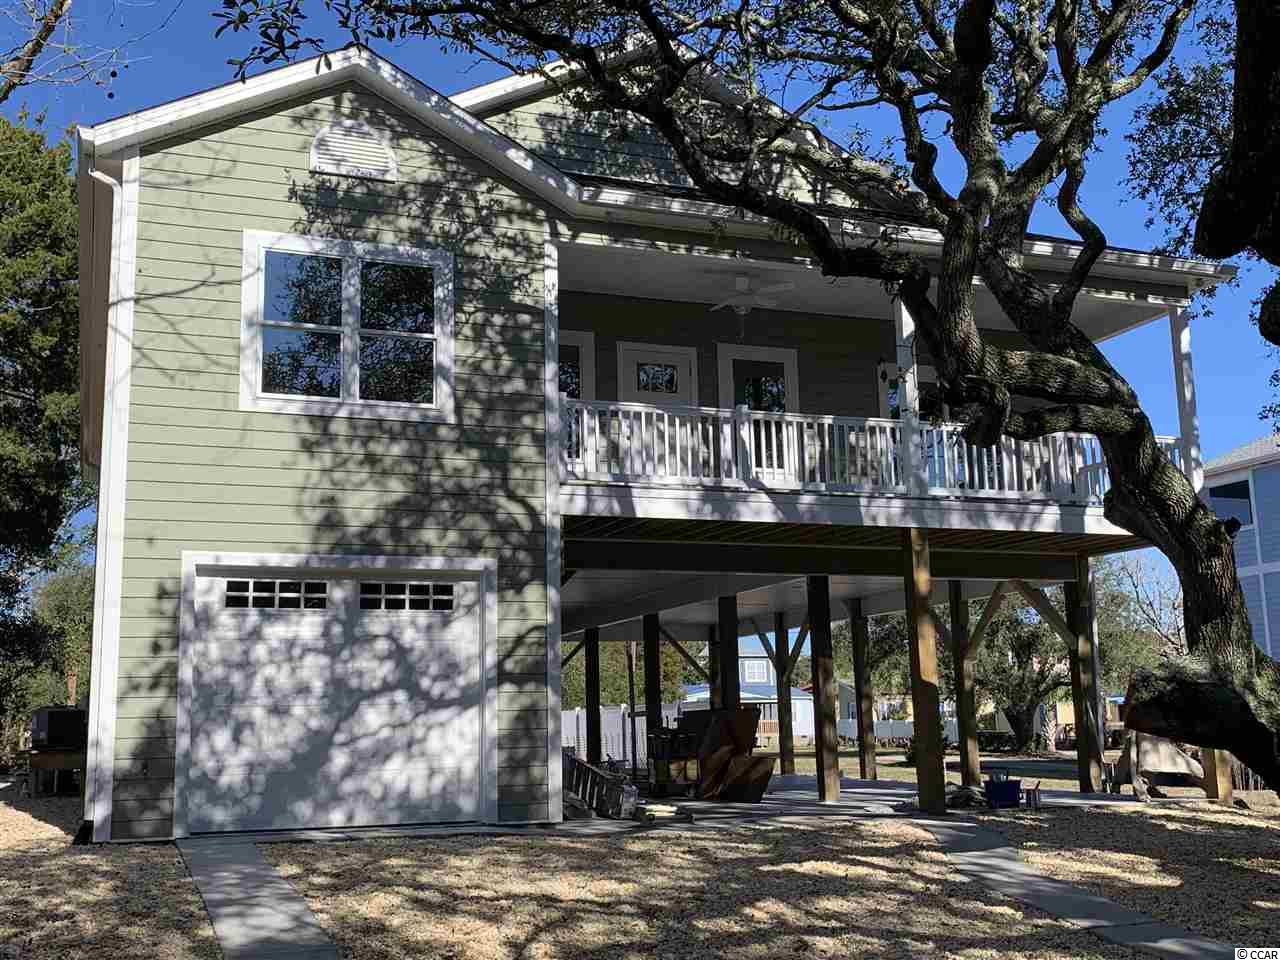 1810 South Perrin Dr., North Myrtle Beach, South Carolina